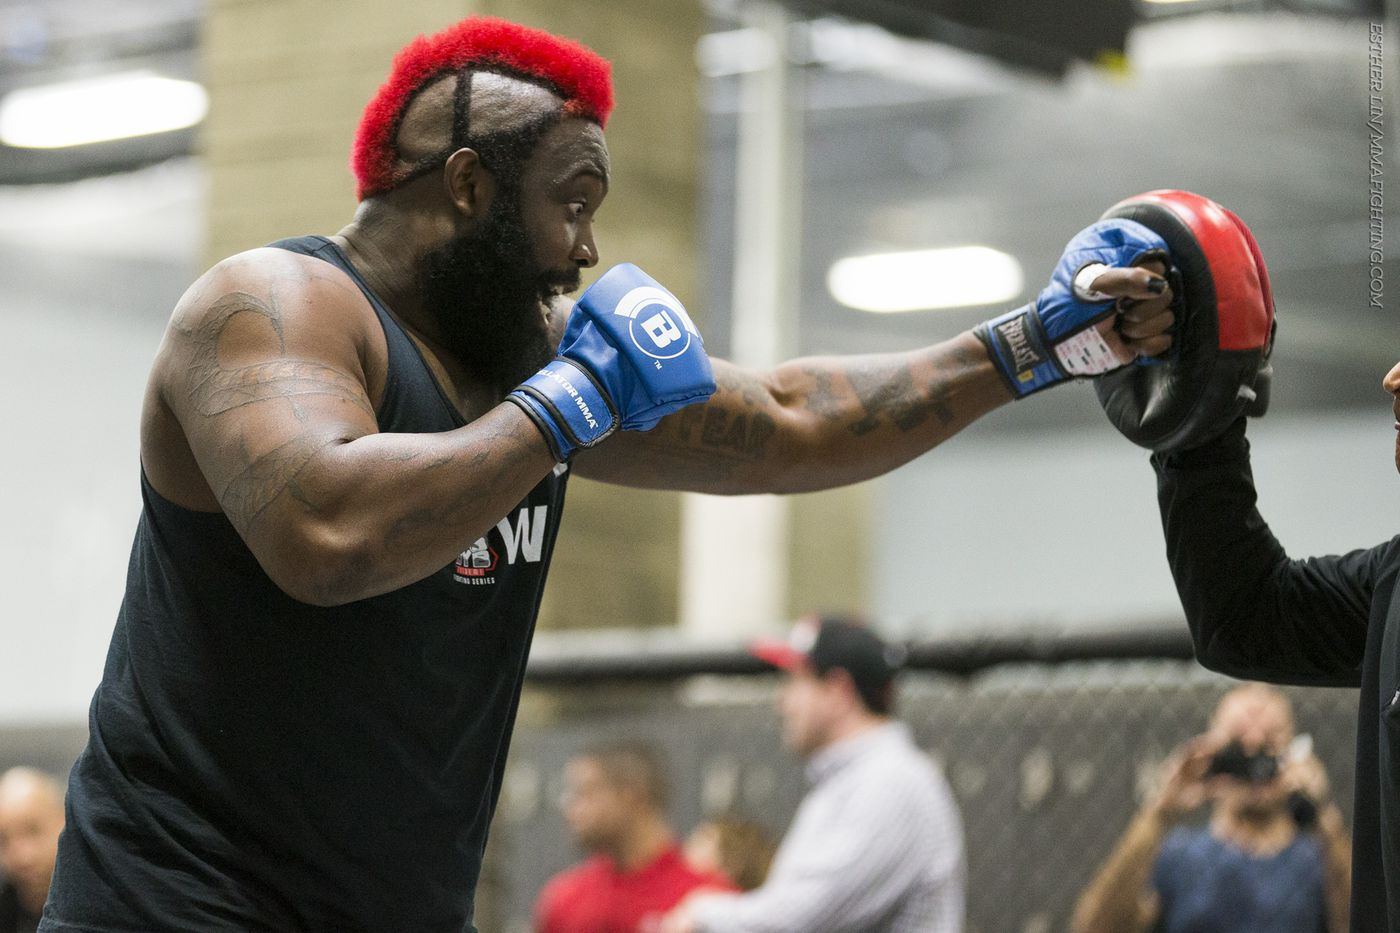 dada 5000 released from hospital following kimbo slice bout mma